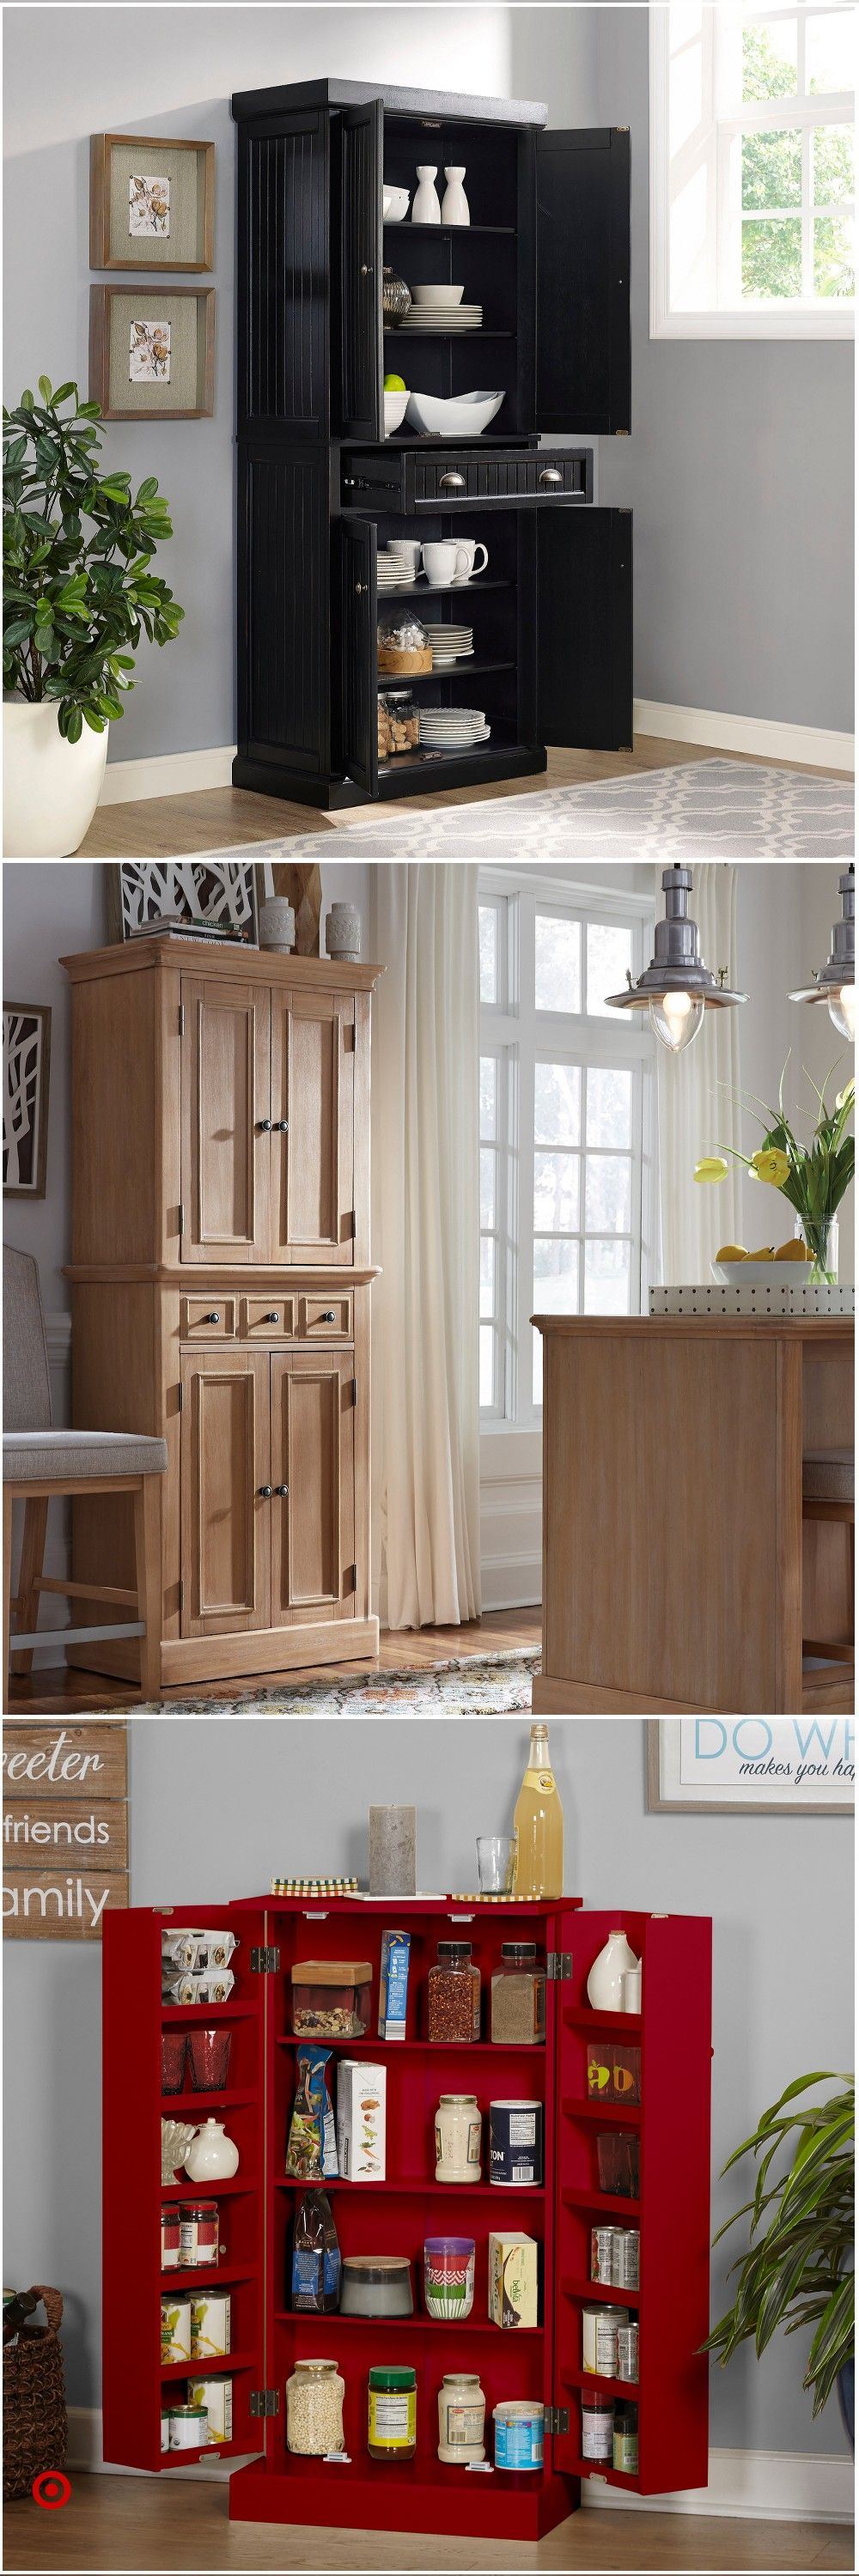 Shop Target For Kitchen Storage Pantry You Will Love At Great Low Prices Free Shipping On Kitchen Storage Kitchen Pantry Design Small Pantry Organization